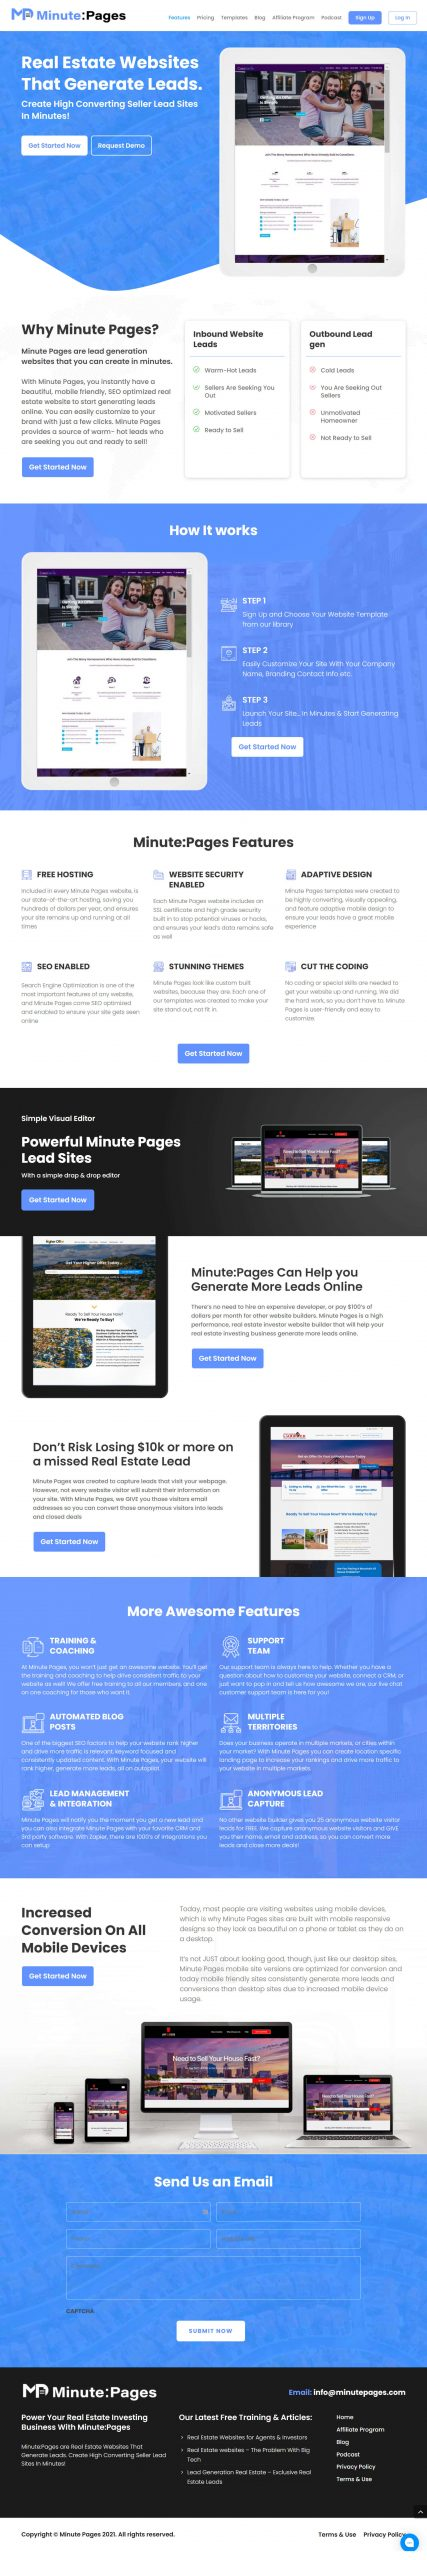 minutepages